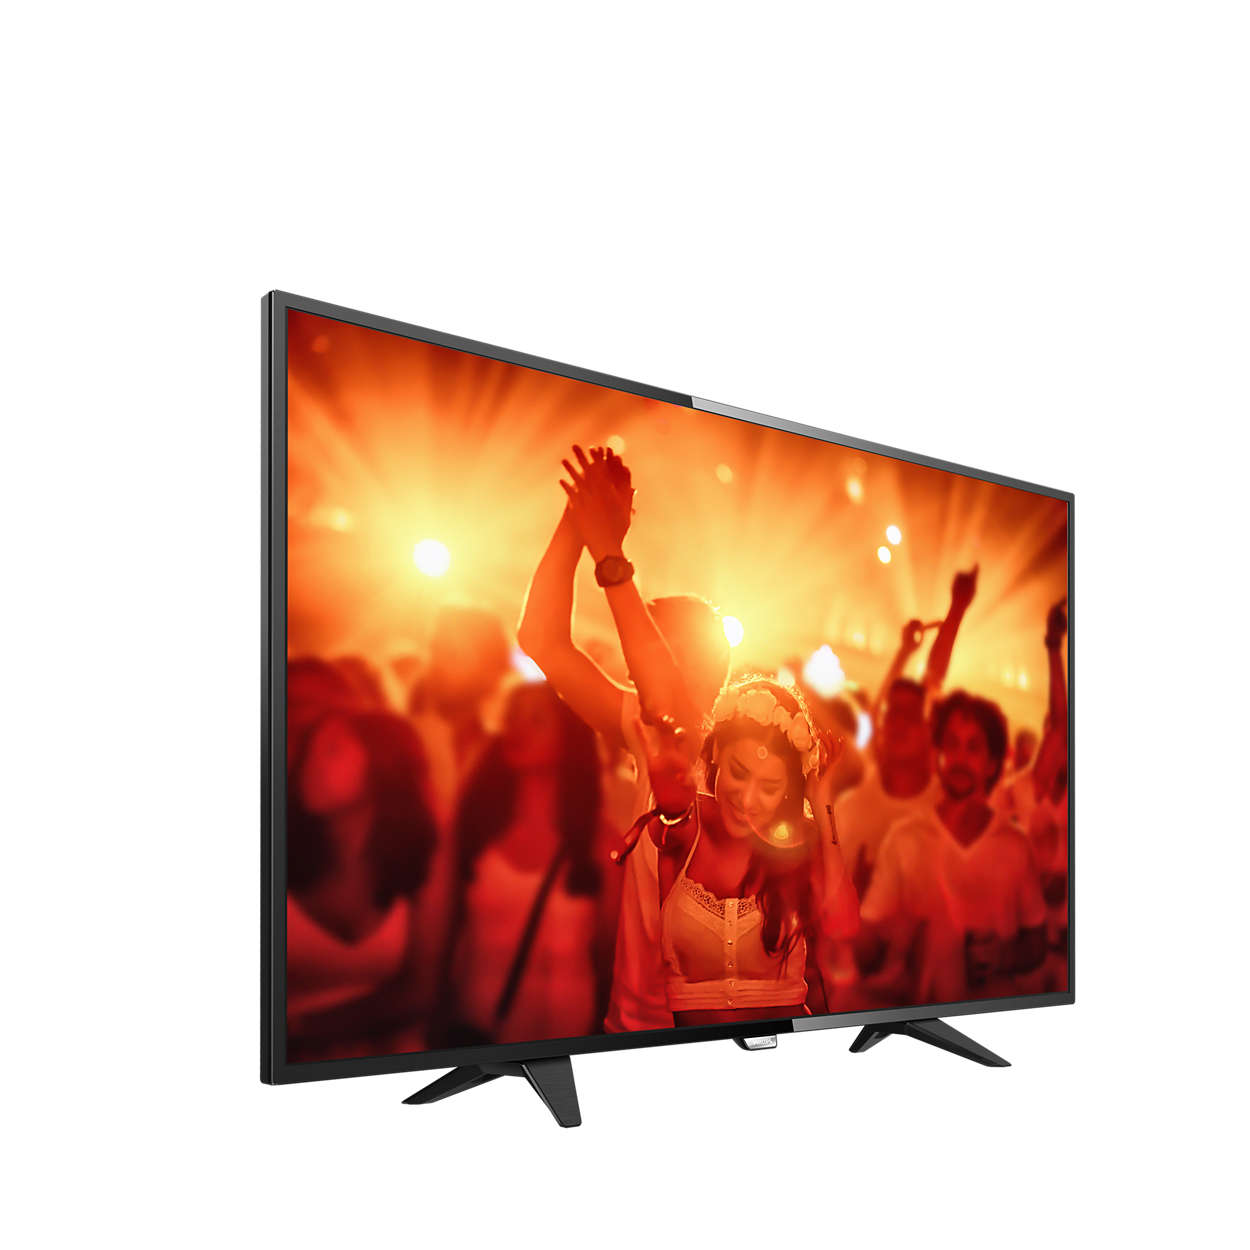 Ultraslanke LED-TV